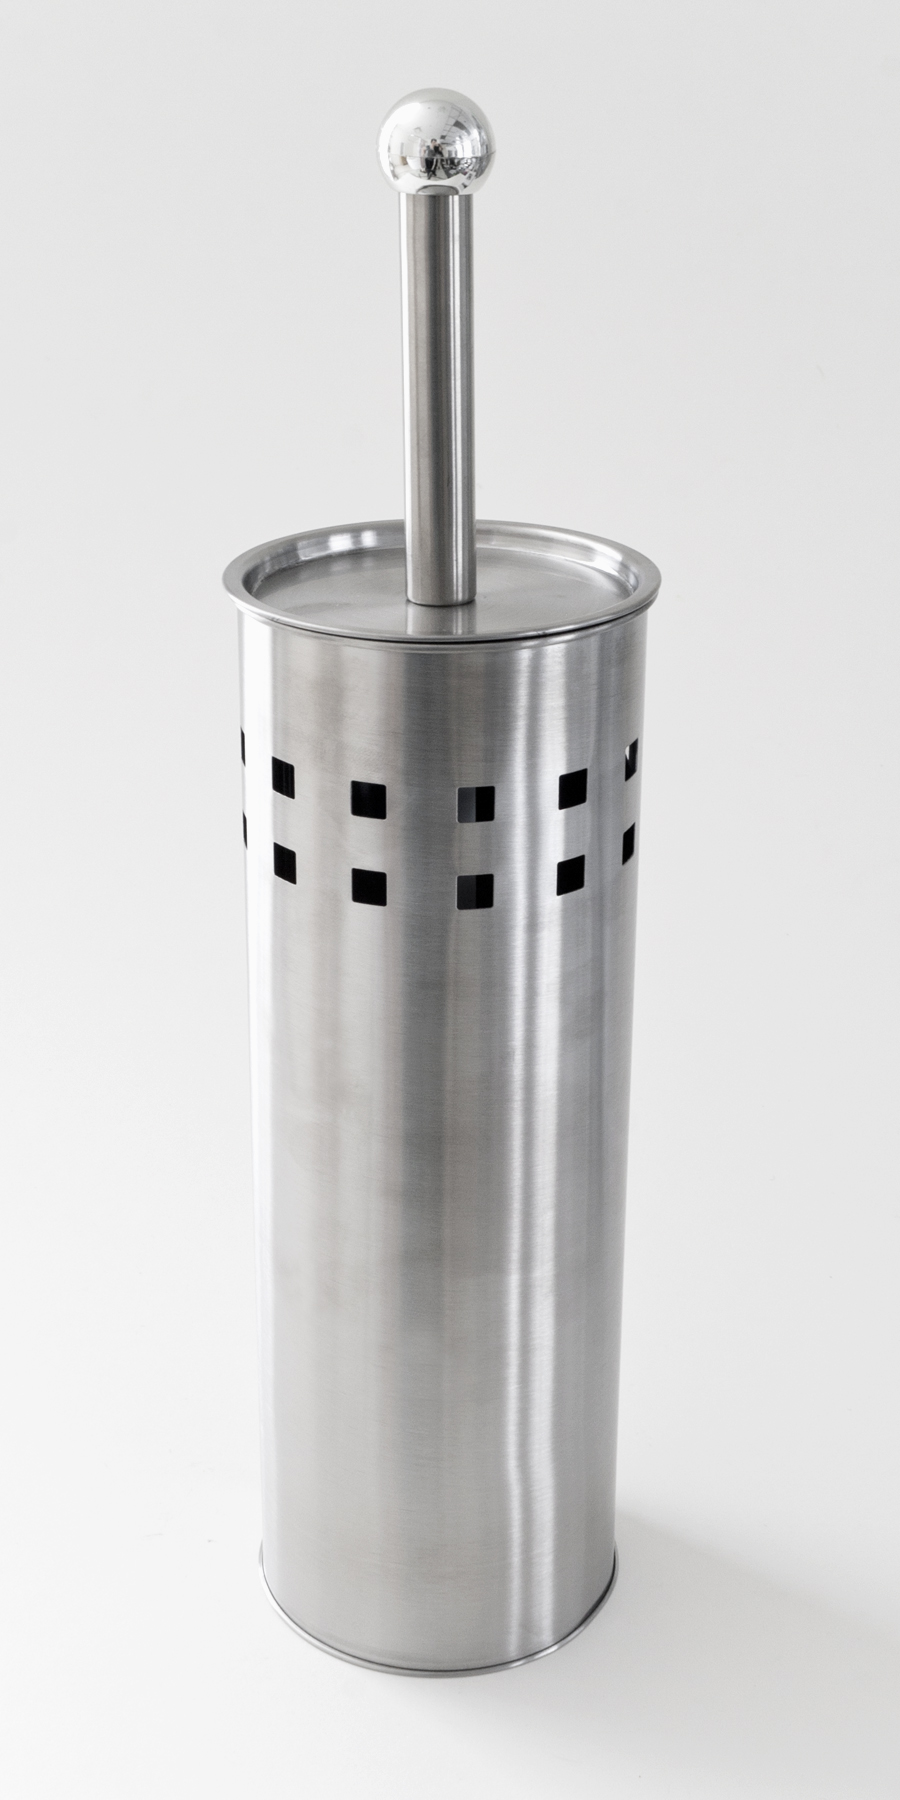 Contemporary metal toilet brush holder